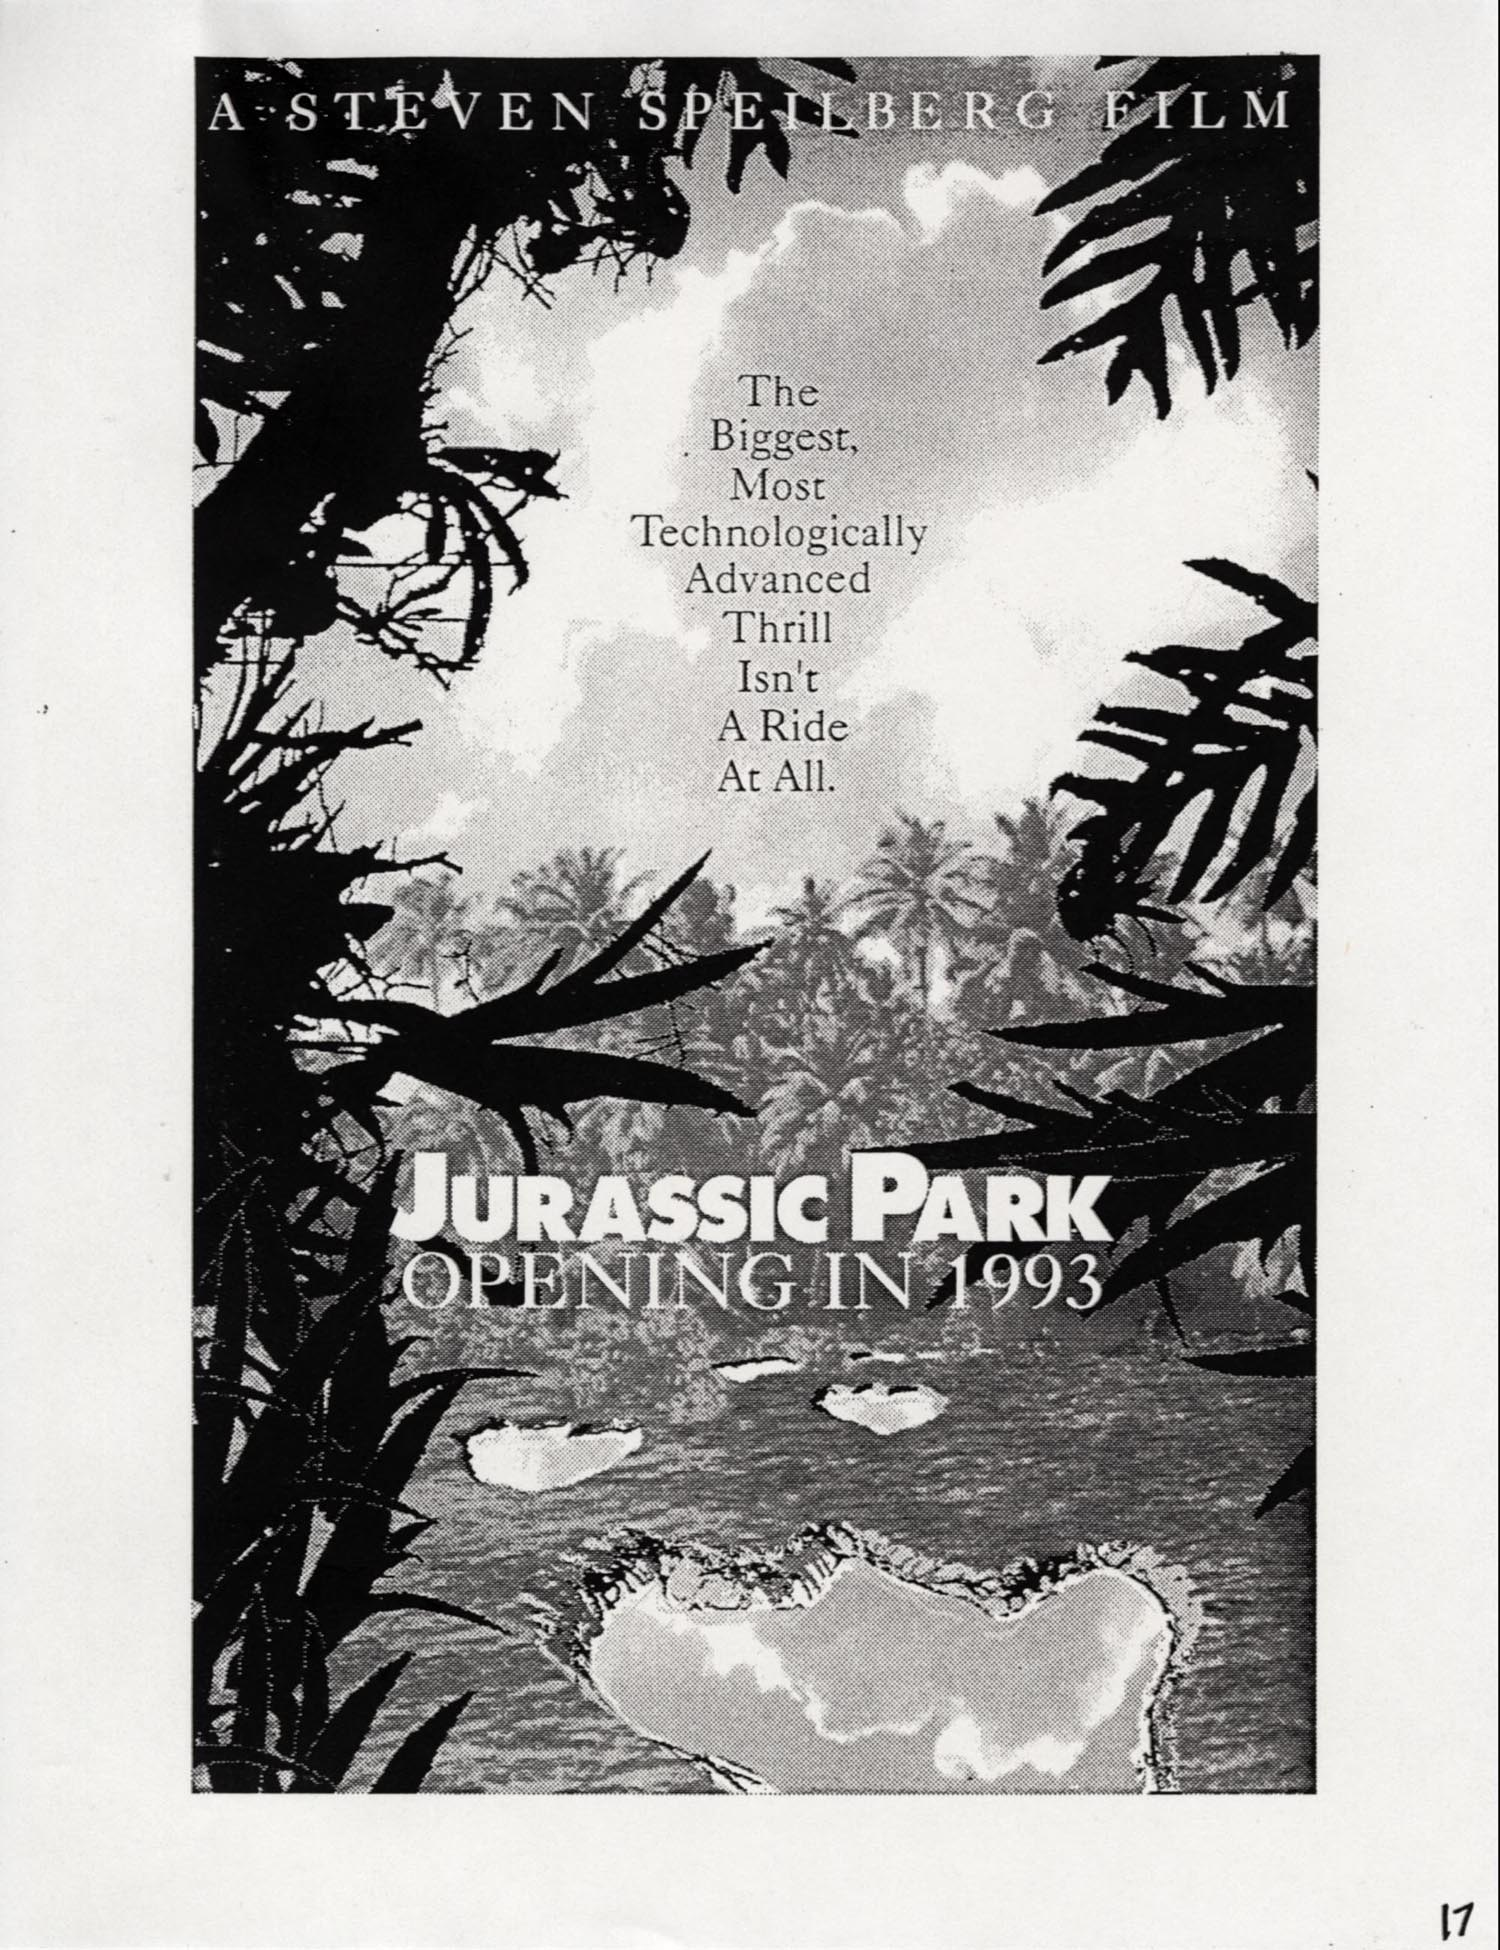 John Alvin   Jurassic Park poster   7 Exclusive: Over a Dozen Never Before Seen Jurassic Park Posters From Famous Artist John Alvin